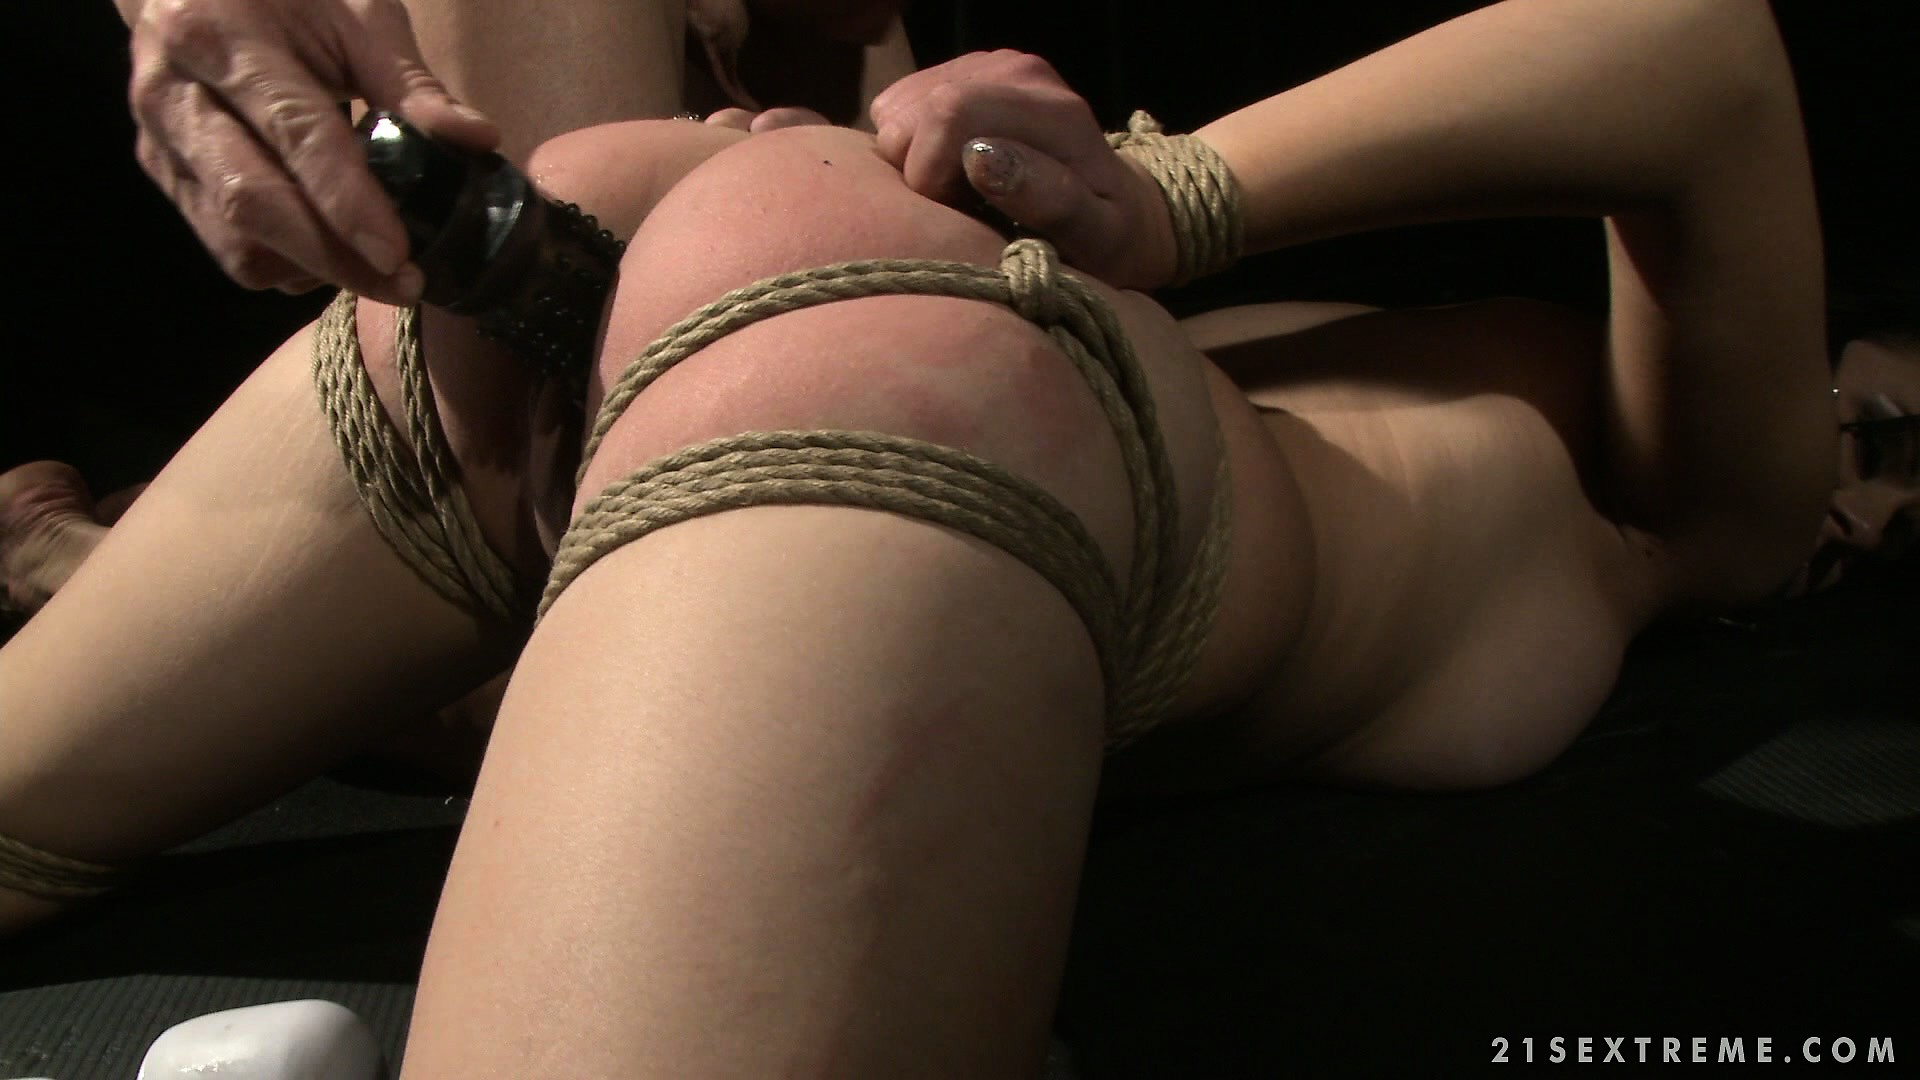 Free hd punishment porn